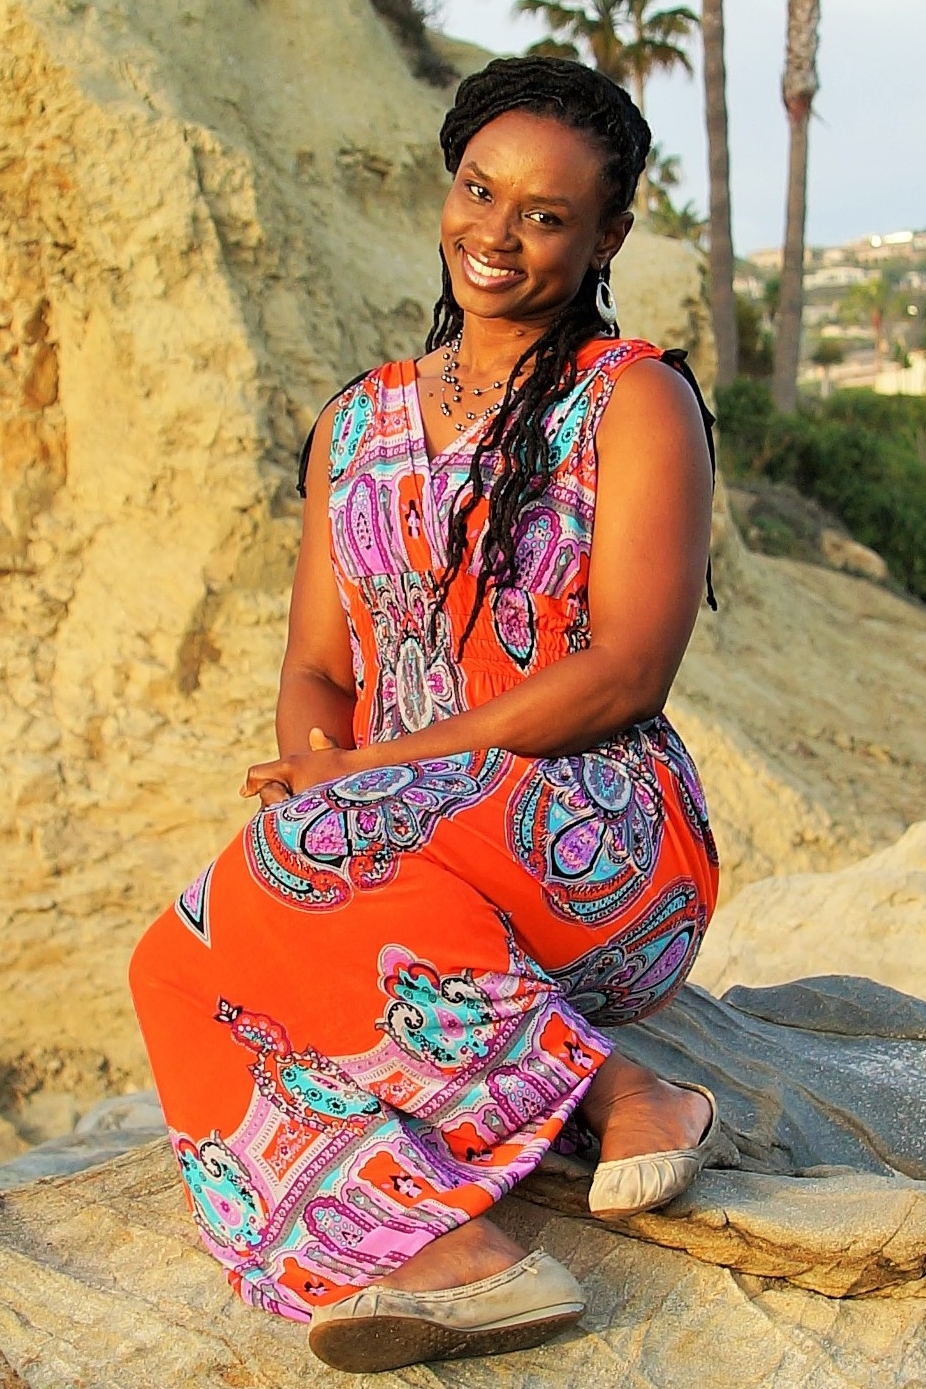 LaNika is the oldest of the sisters. She loves creating and performing good music. In addition to singing, LaNika also writes music and plays the piano. Inspired by reggae and soul music, LaNika enjoys writing inspiring and uplifting music and considers sharing her music and message with others one of life's gifts. She is known as the encouraging one because of her infectious positive attitude.